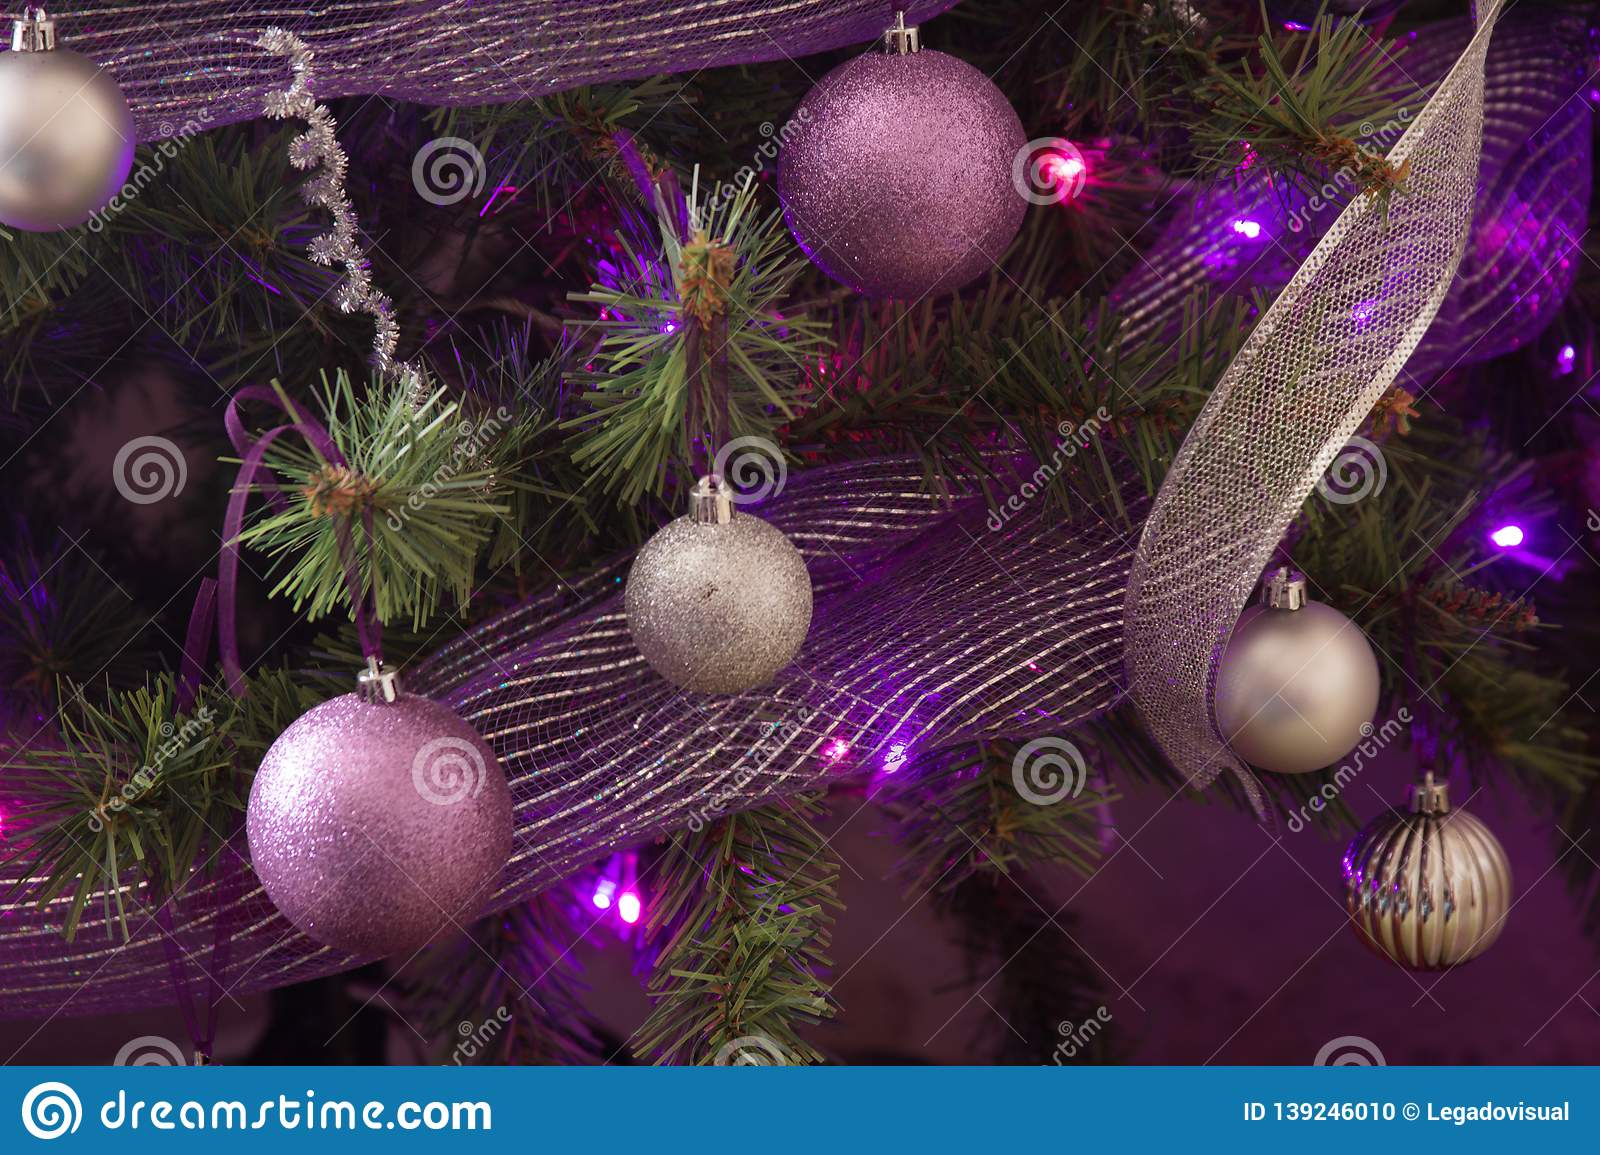 Purple And Silver Christmas Trees.Christmas Decoration In Purple And Silver Stock Photo